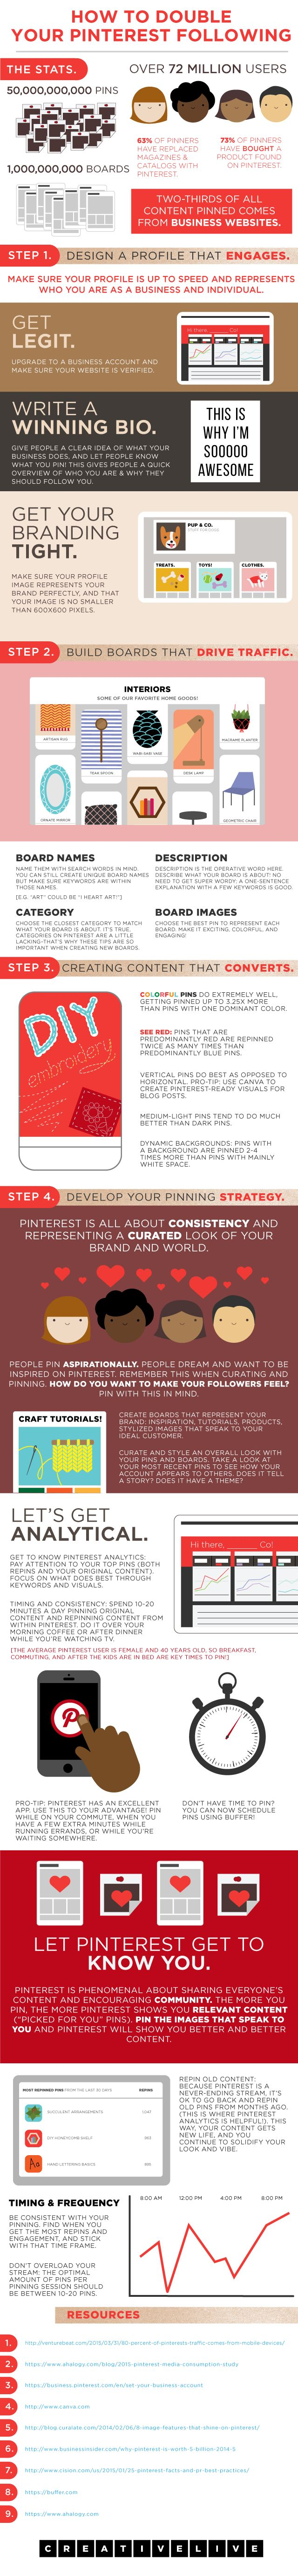 How to Get More Followers on Pinterest Infographic on CreativeLive